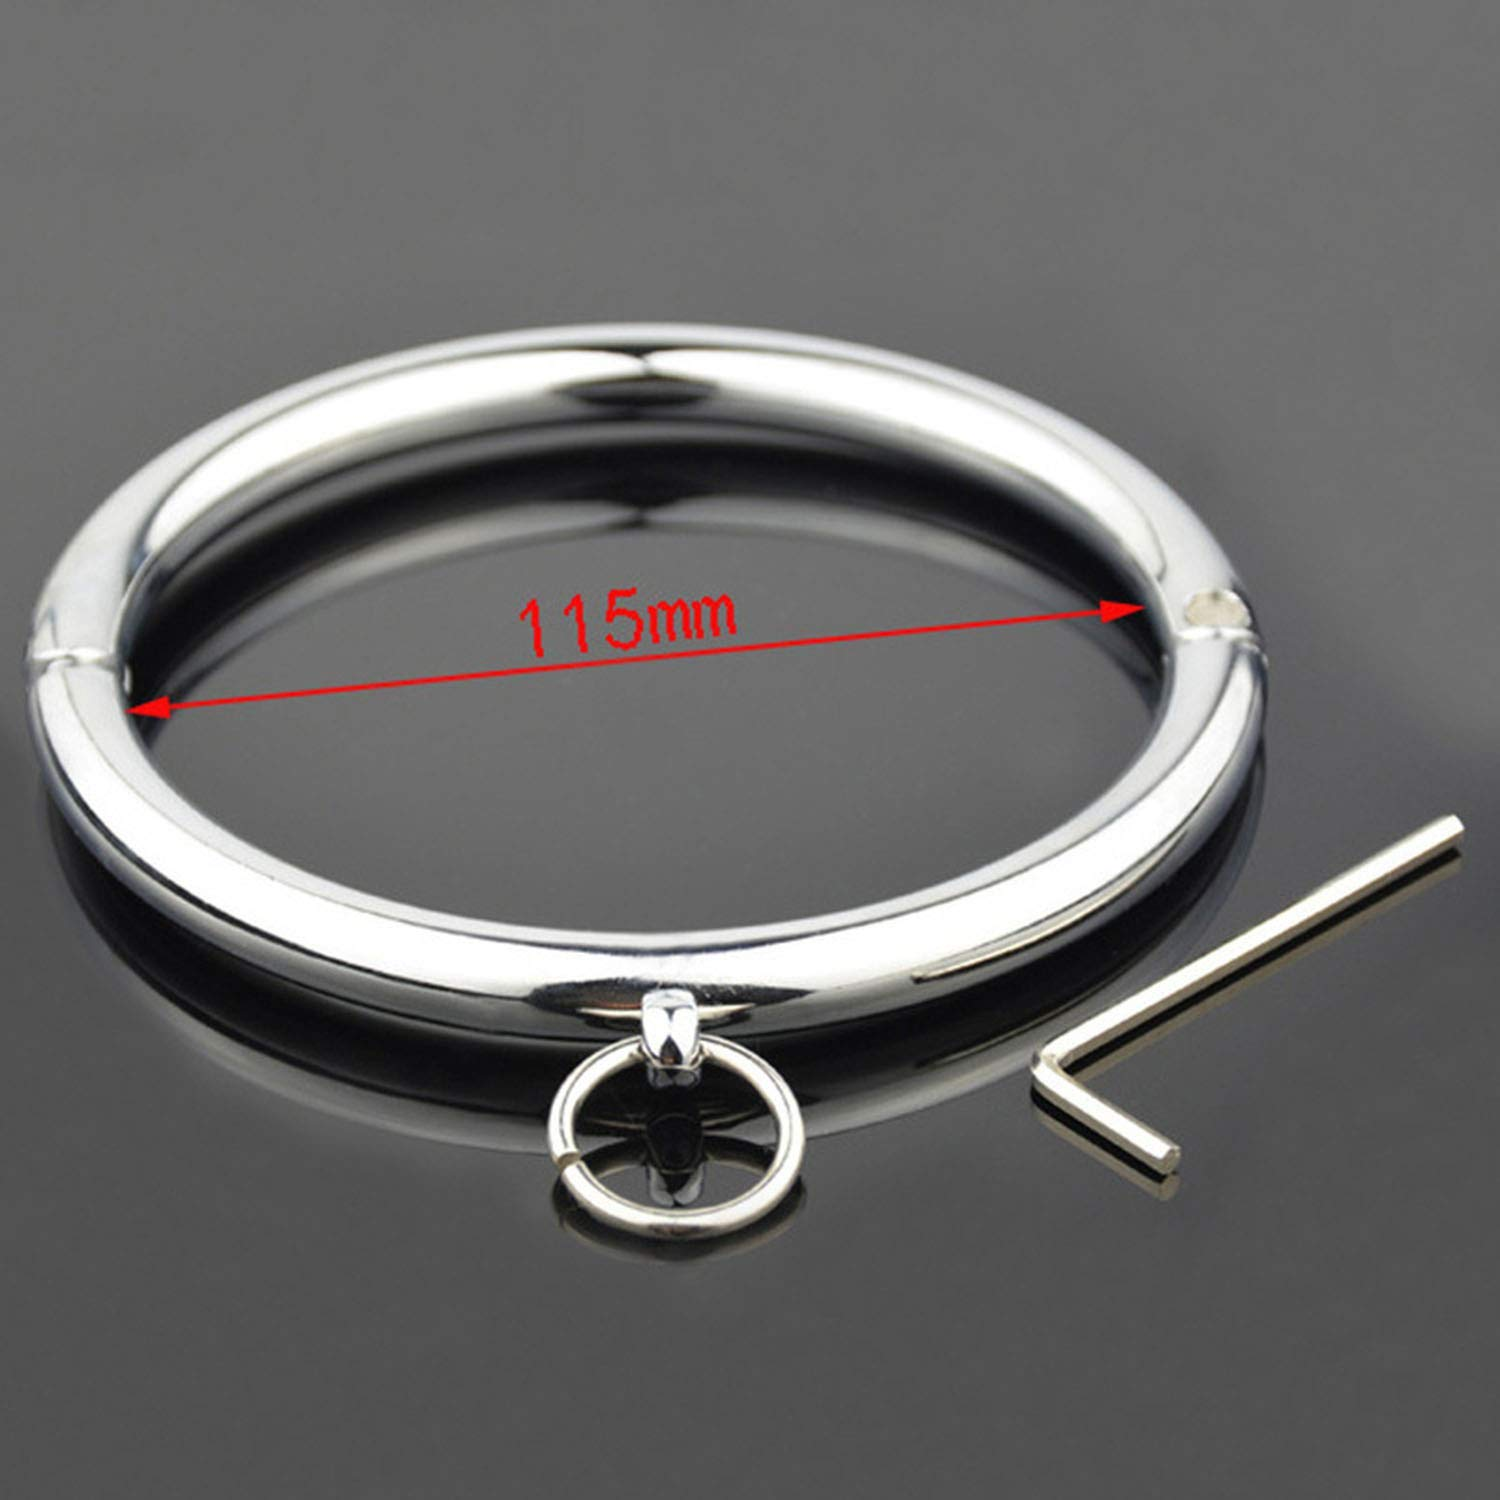 BDSM SM 115mm Metal Stainless Steel Dog Neck Collar SLE Bondage Key Cuff Adult Women Sexxxvy Toys Couples LF-102,Inner Diameter 115mm,BDSM T-Shirt